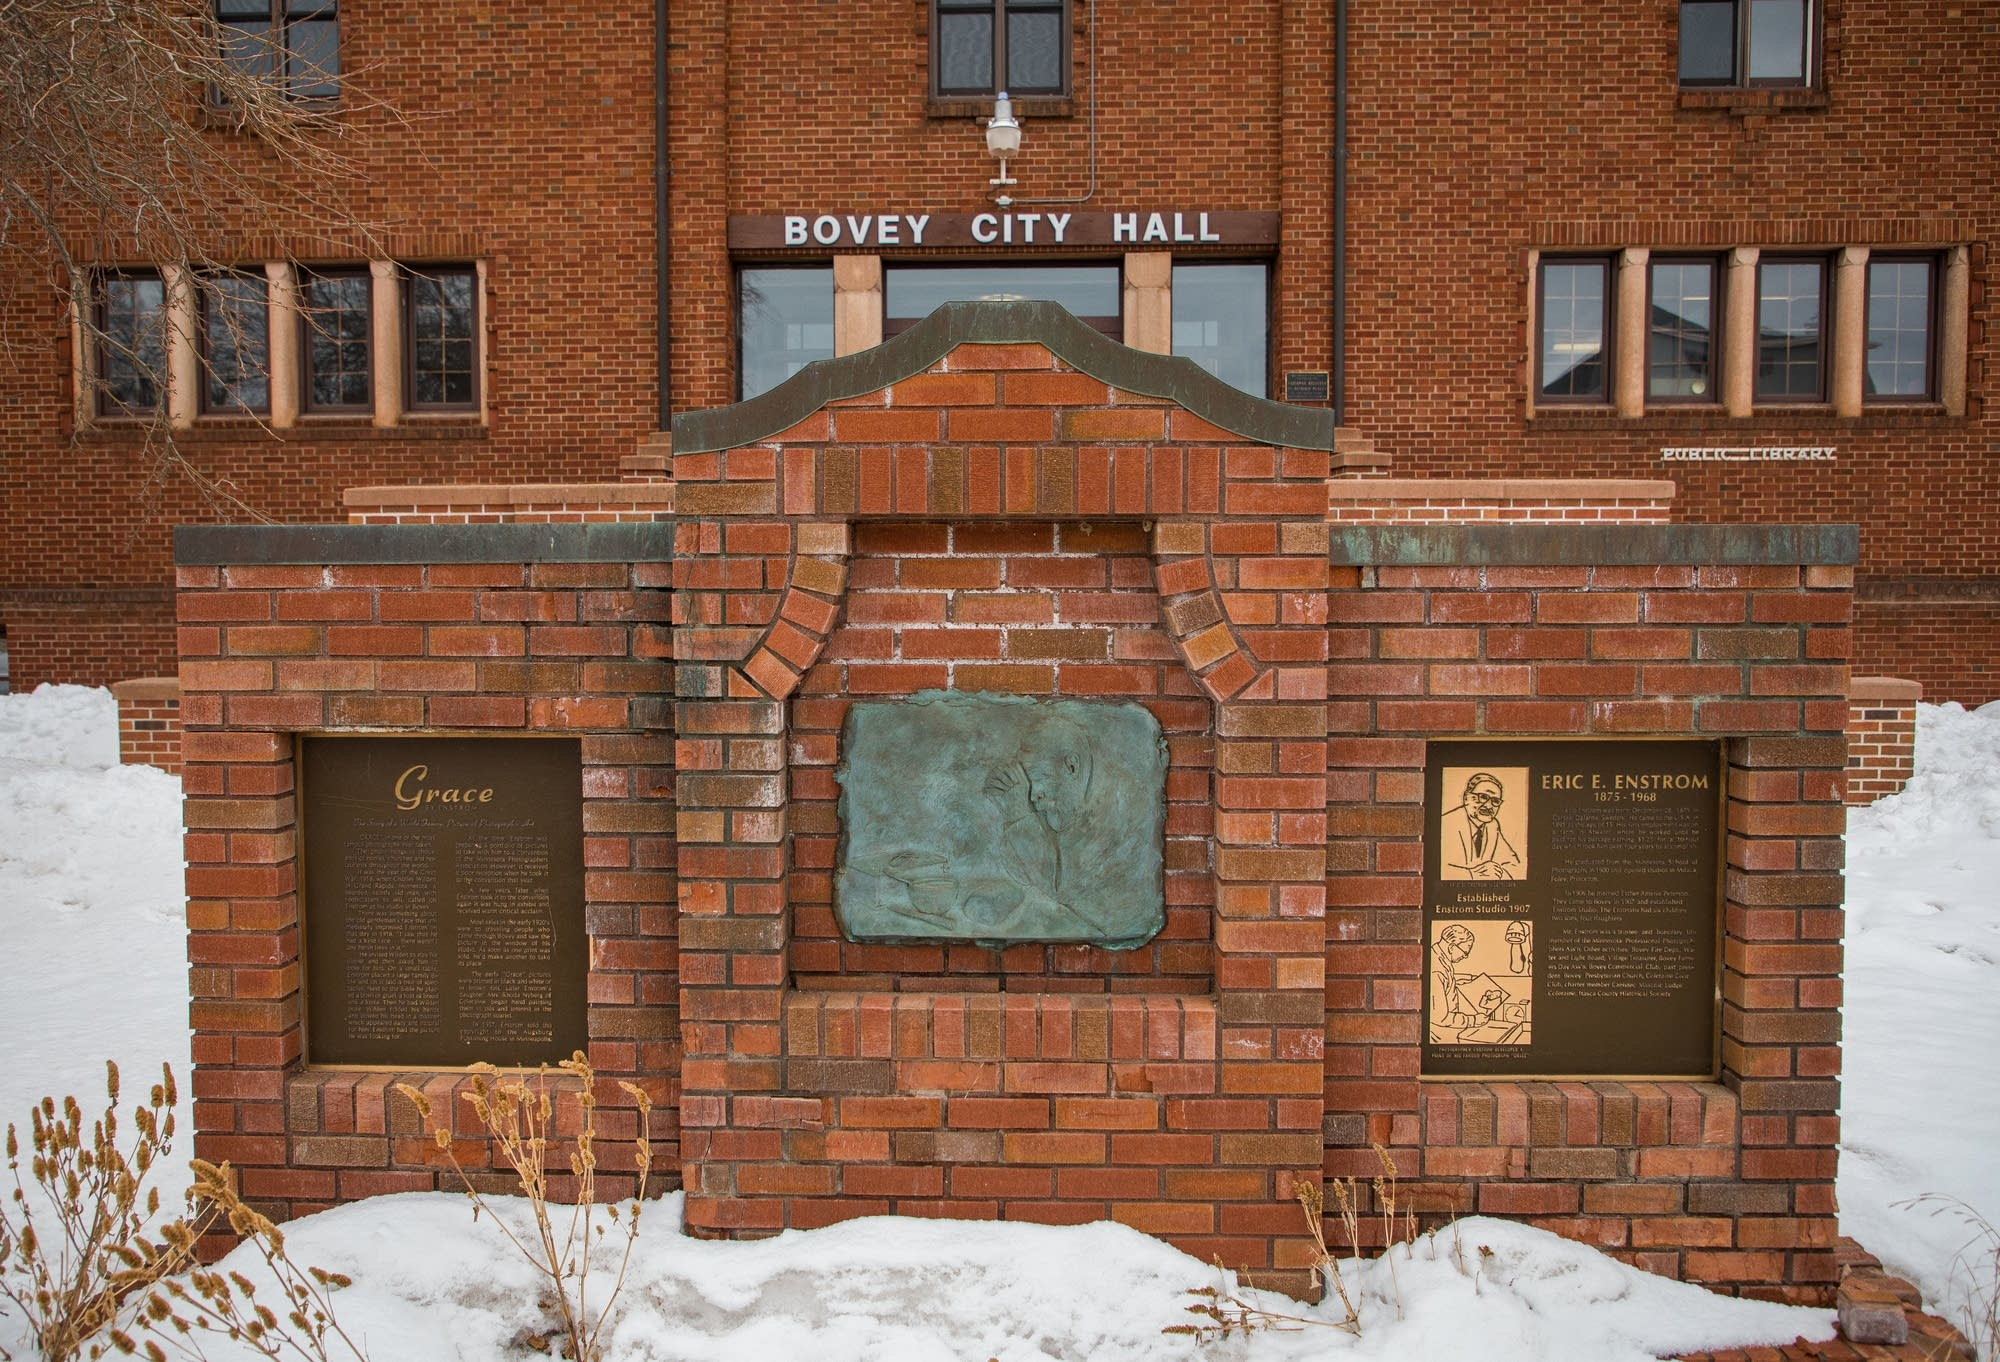 Bovey City Hall includes a monument to Eric Enstrom and